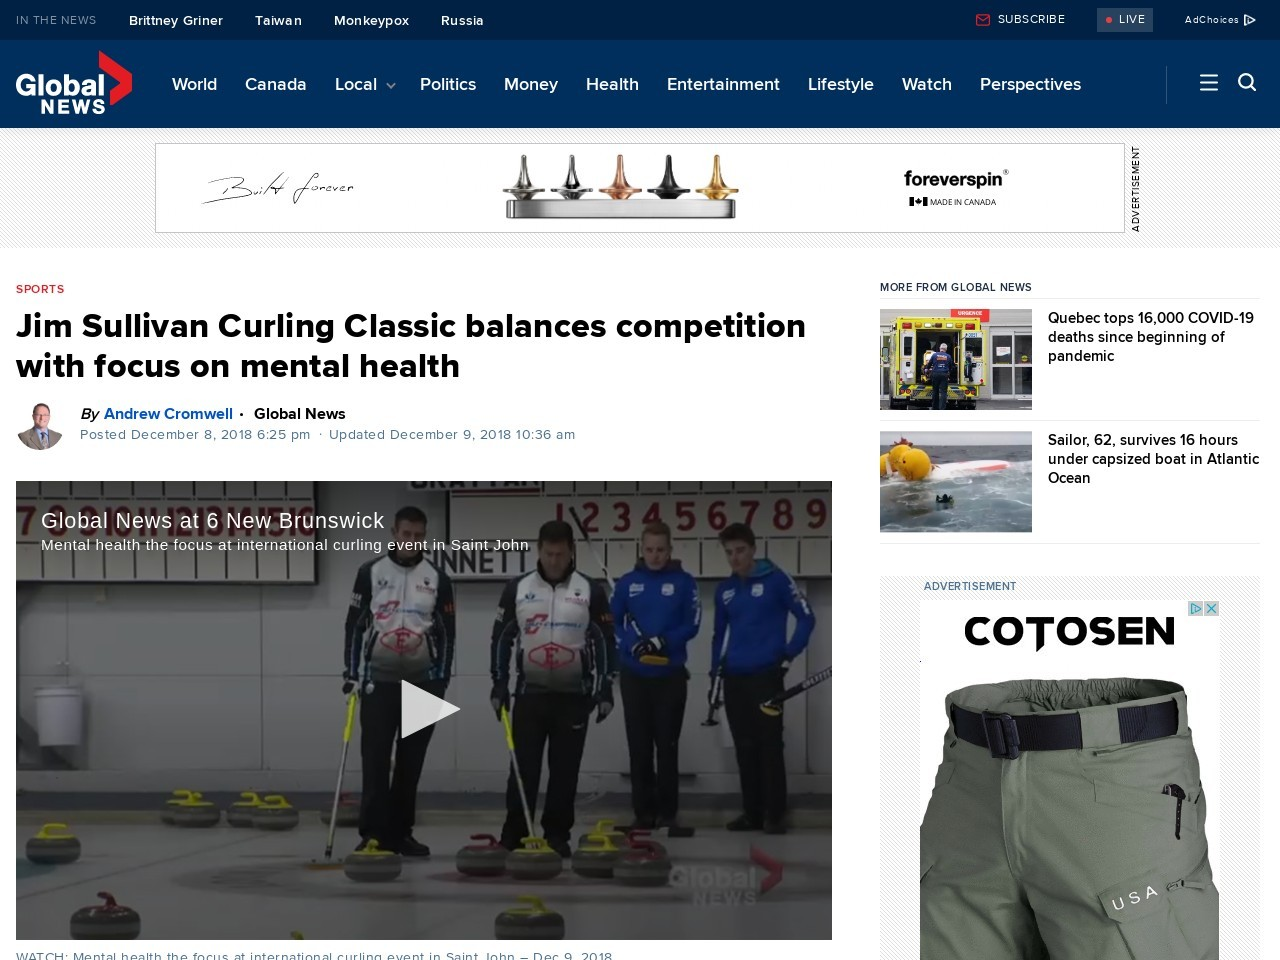 Jim Sullivan Curling Classic balances competition with focus on mental health